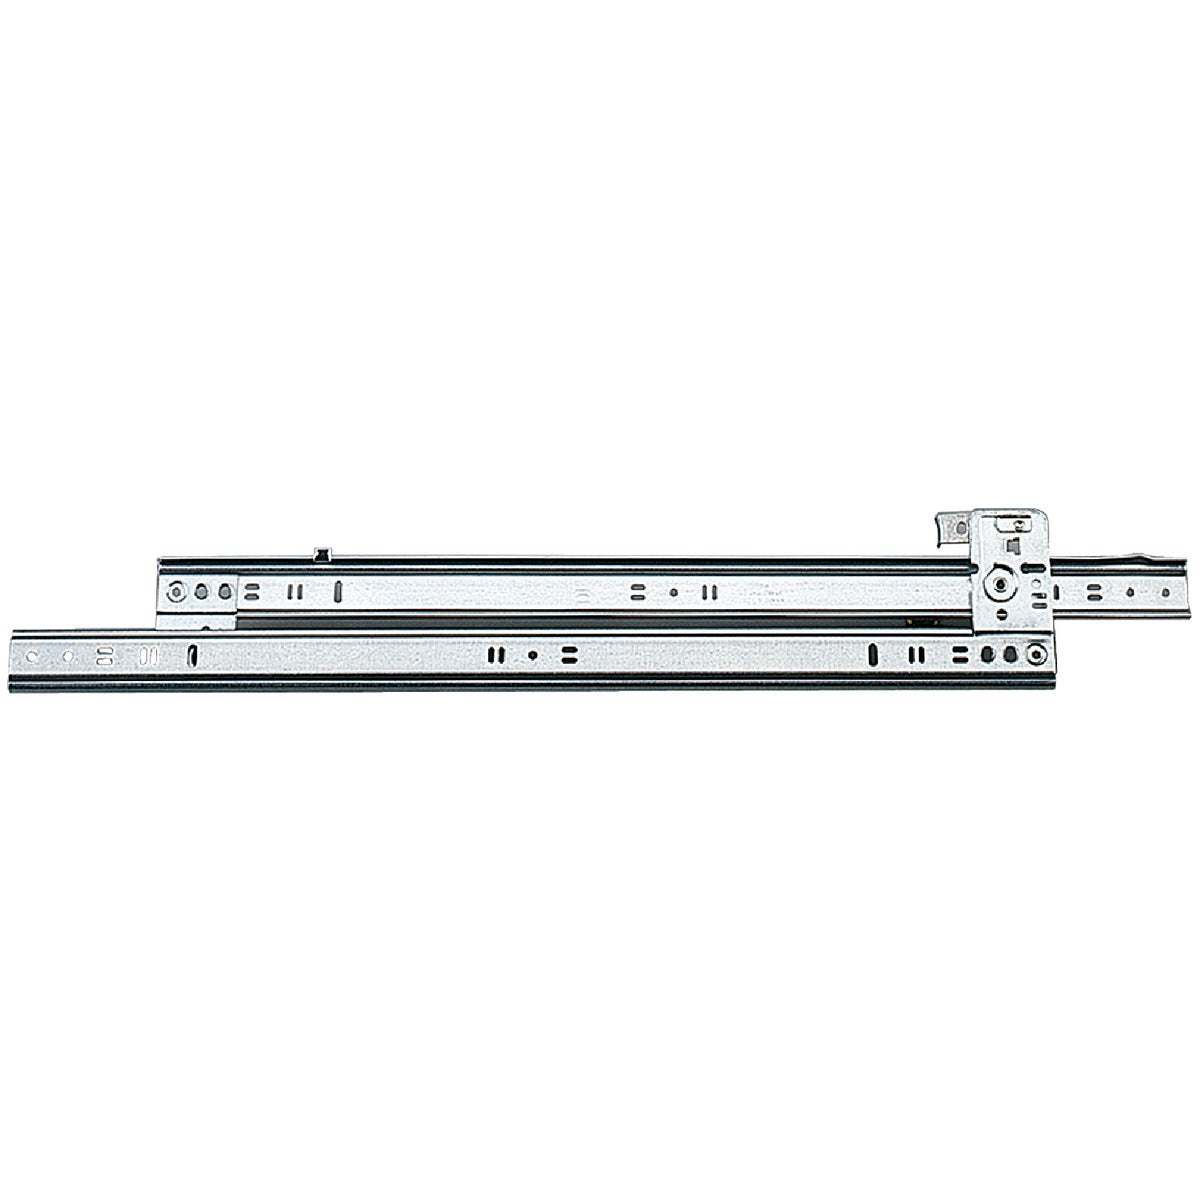 "22"" DRAWER SLIDES - 1260P-22 by Knape & Vogt Mfg Co"